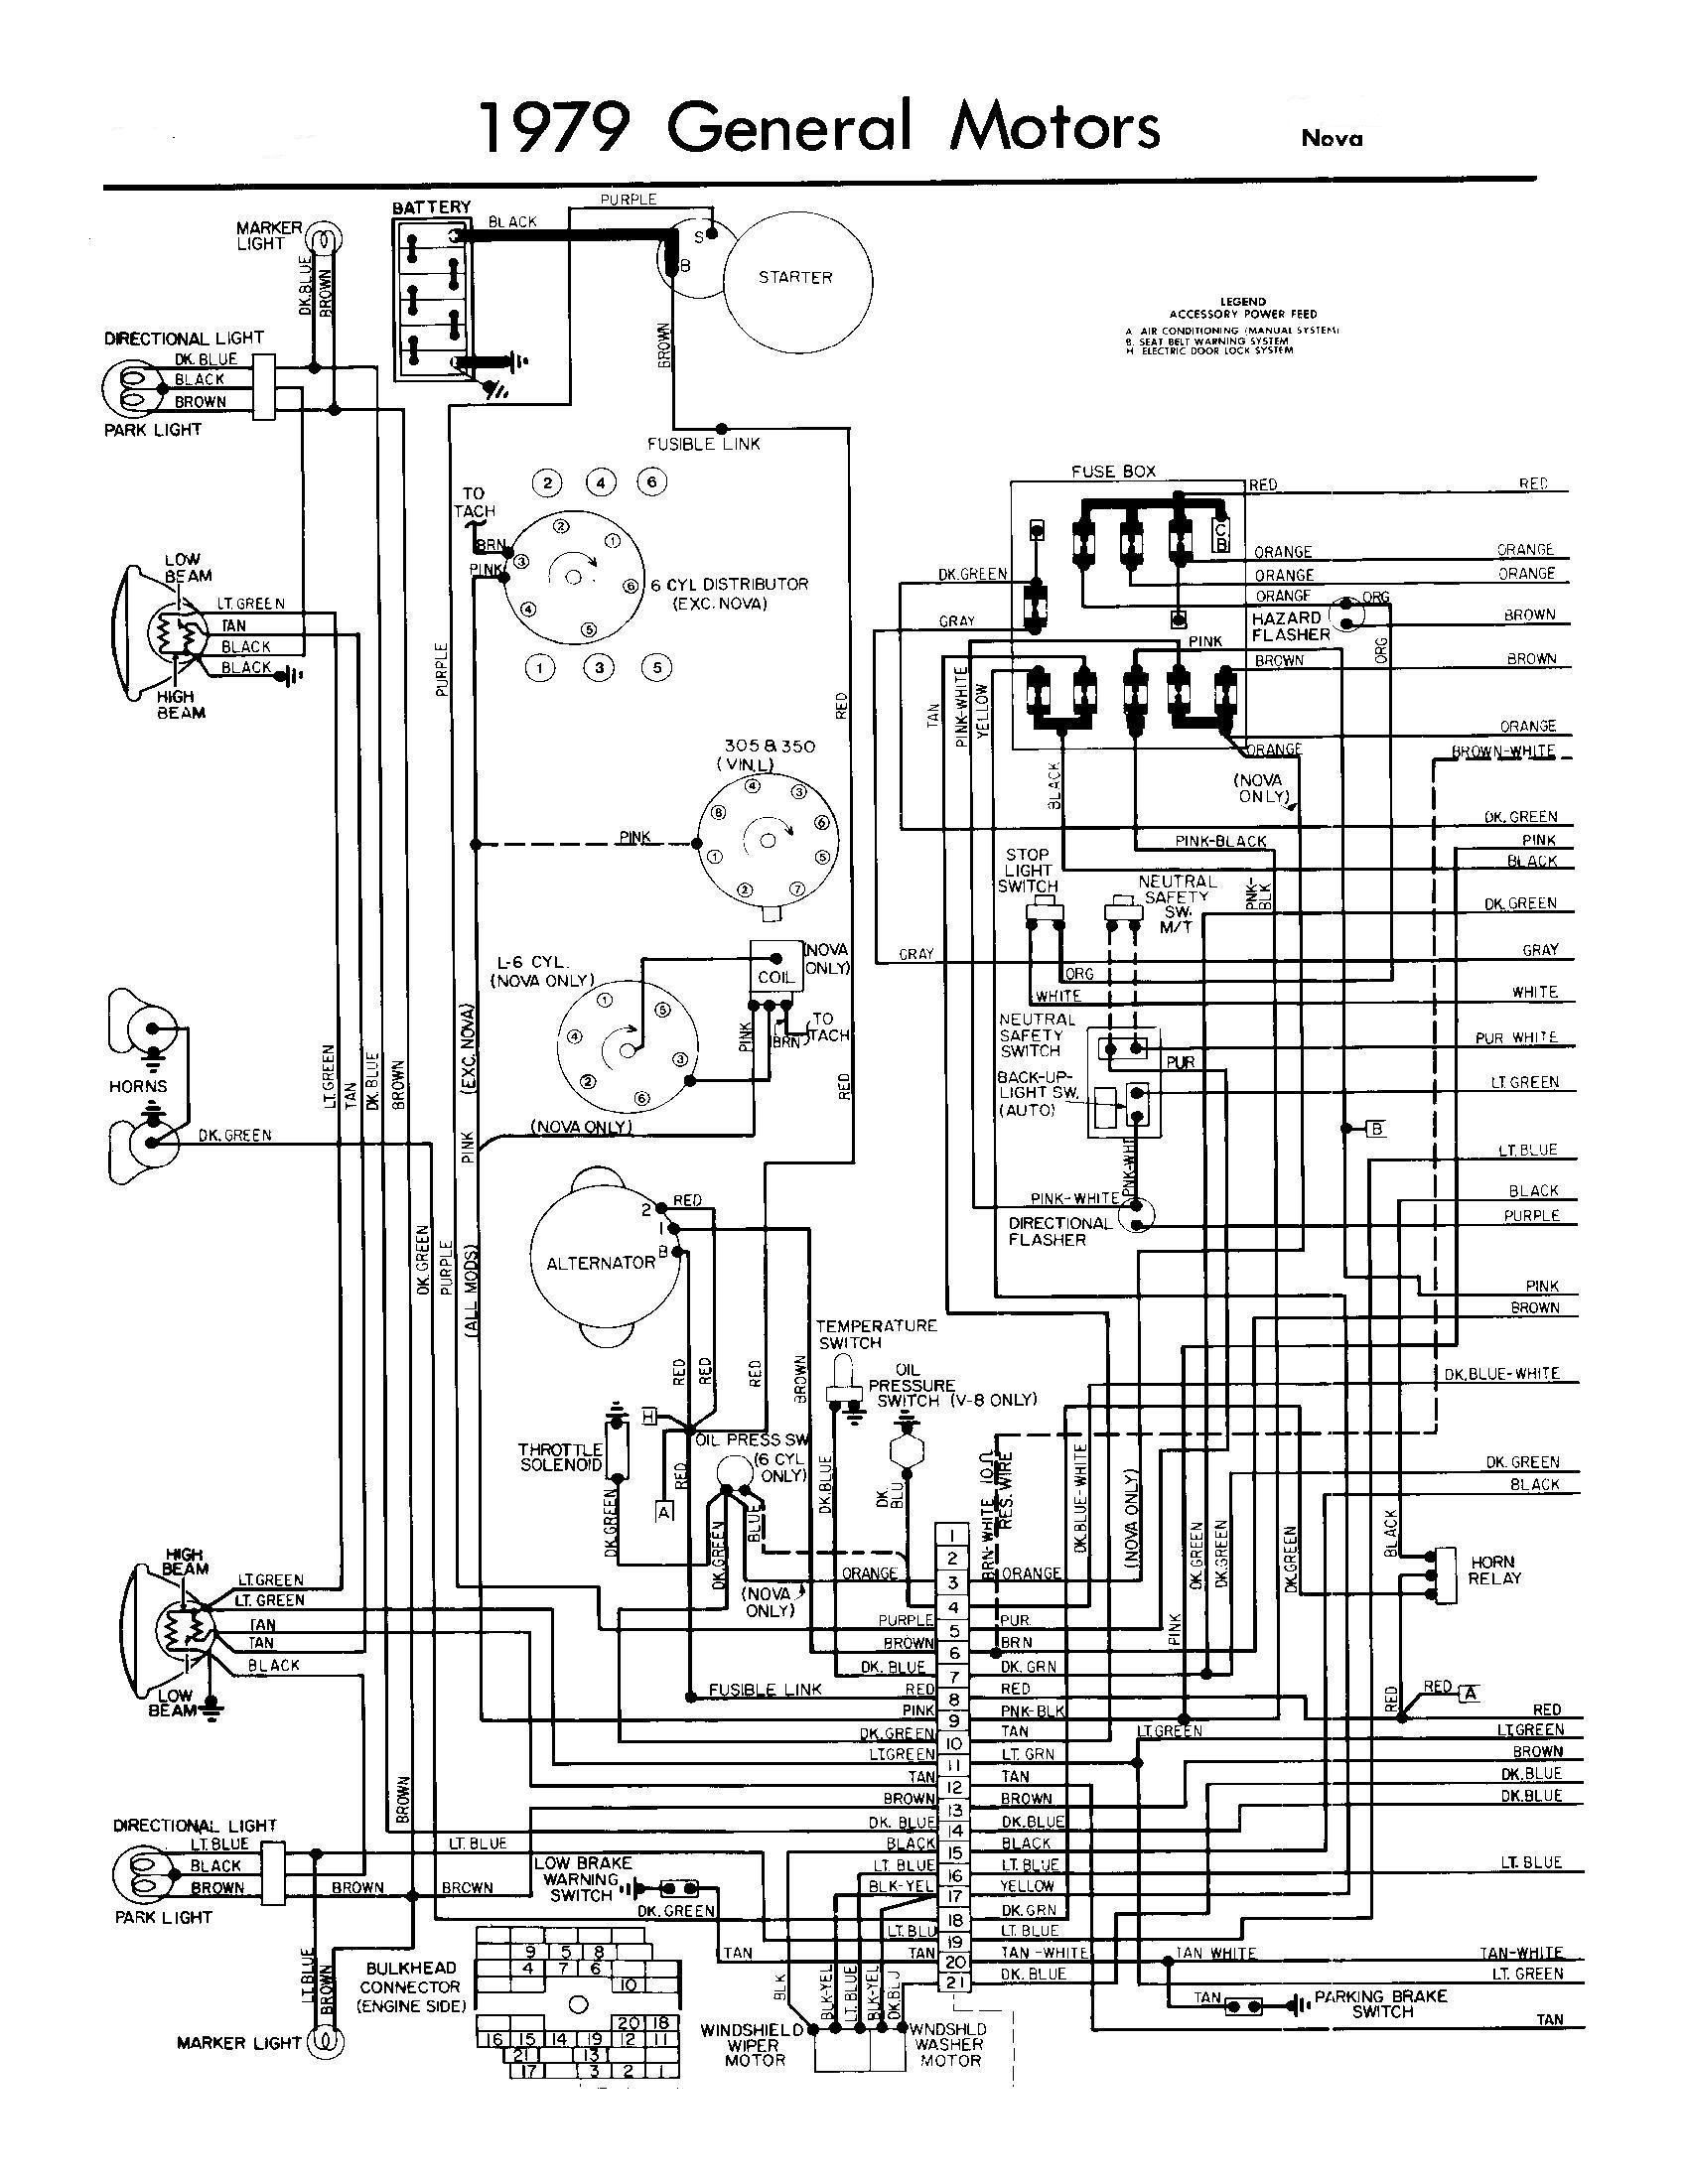 Mini Truck Wiring Diagram Schematic 2007 Mitsubishi Fuso Diagrams 93 Gm Chevy Power Window